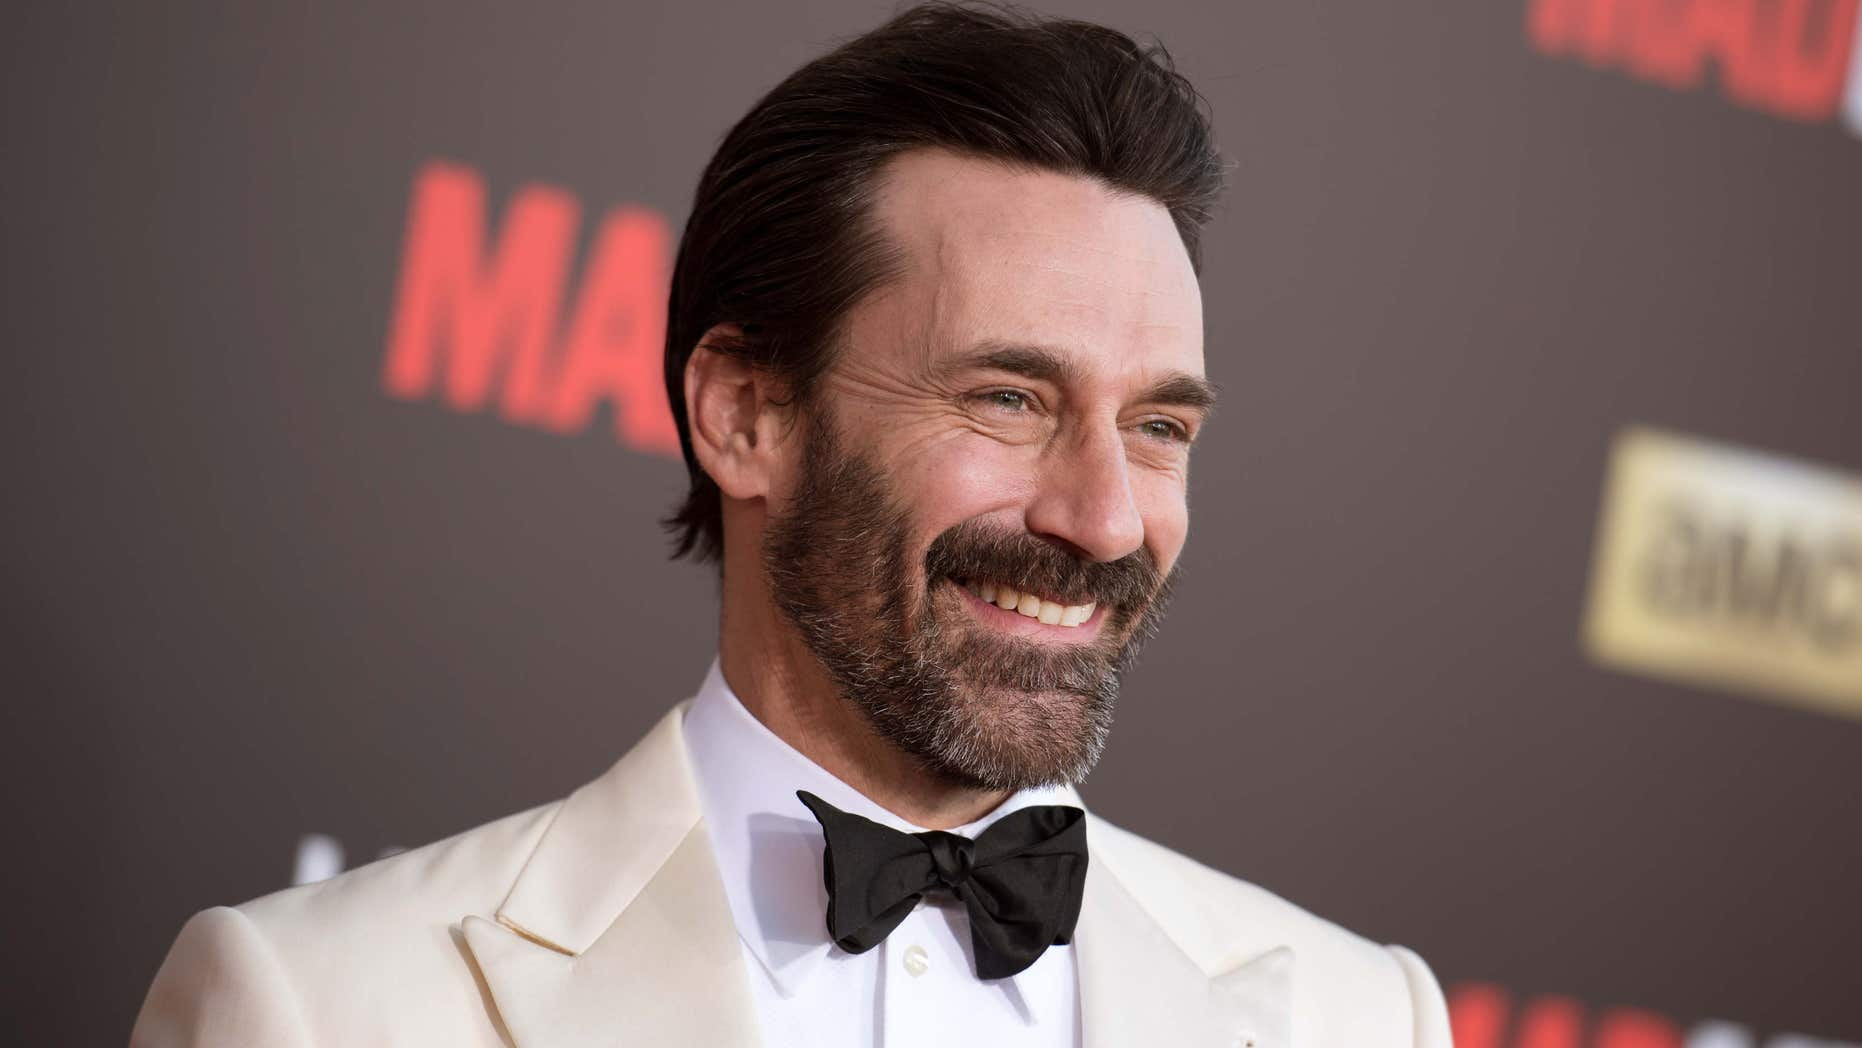 """March 25, 2015: Jon Hamm arrives at The Black And Red Ball In Celebration Of The Final Seven Episodes Of """"Mad Men"""" in Los Angeles."""